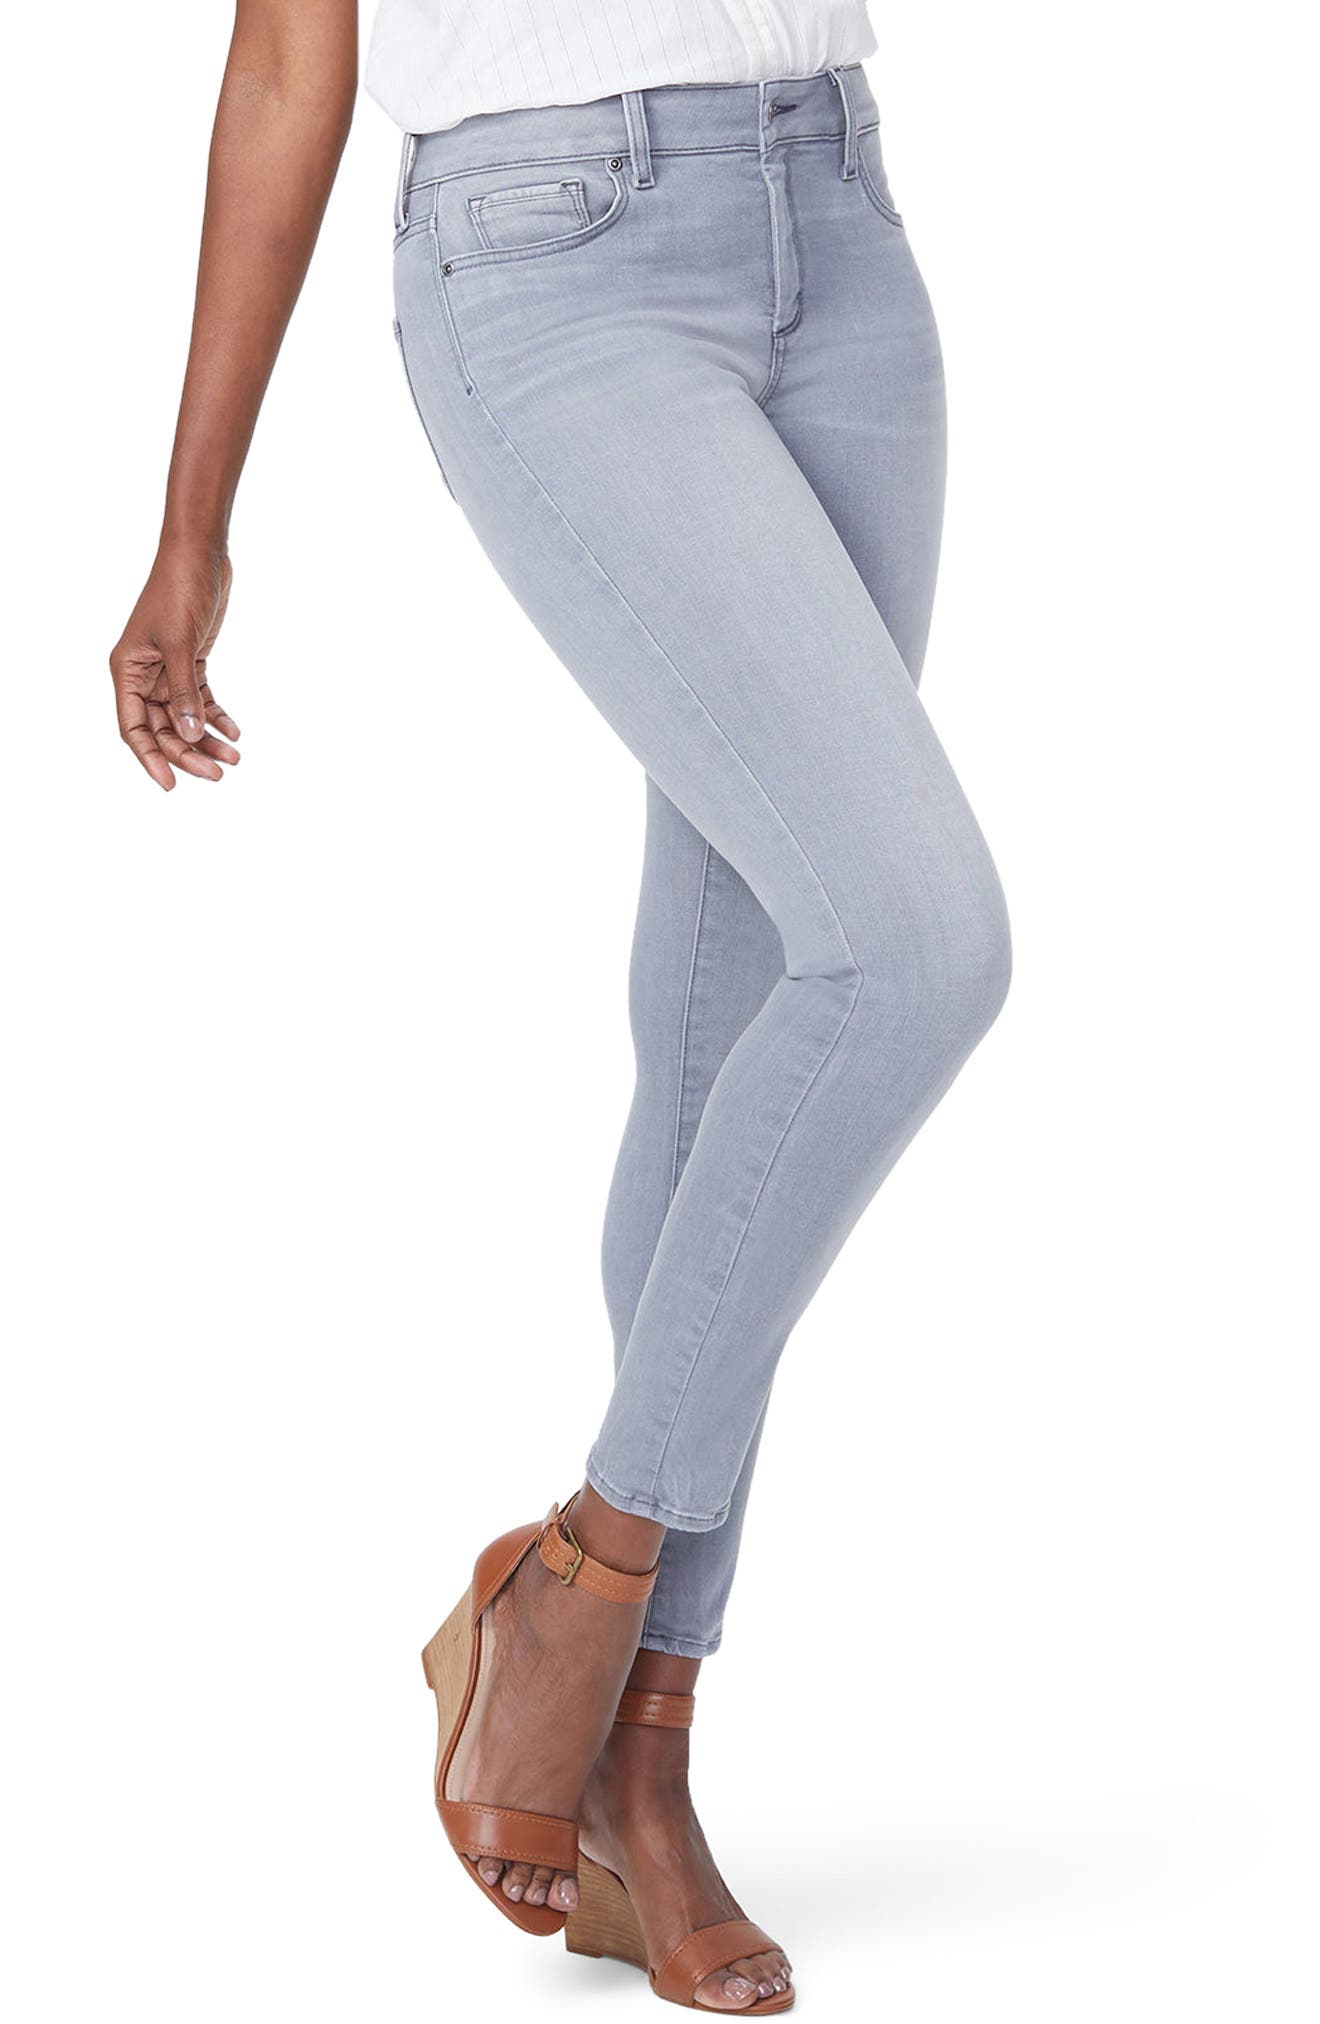 Ami Skinny Jeans,                         Main,                         color, 020